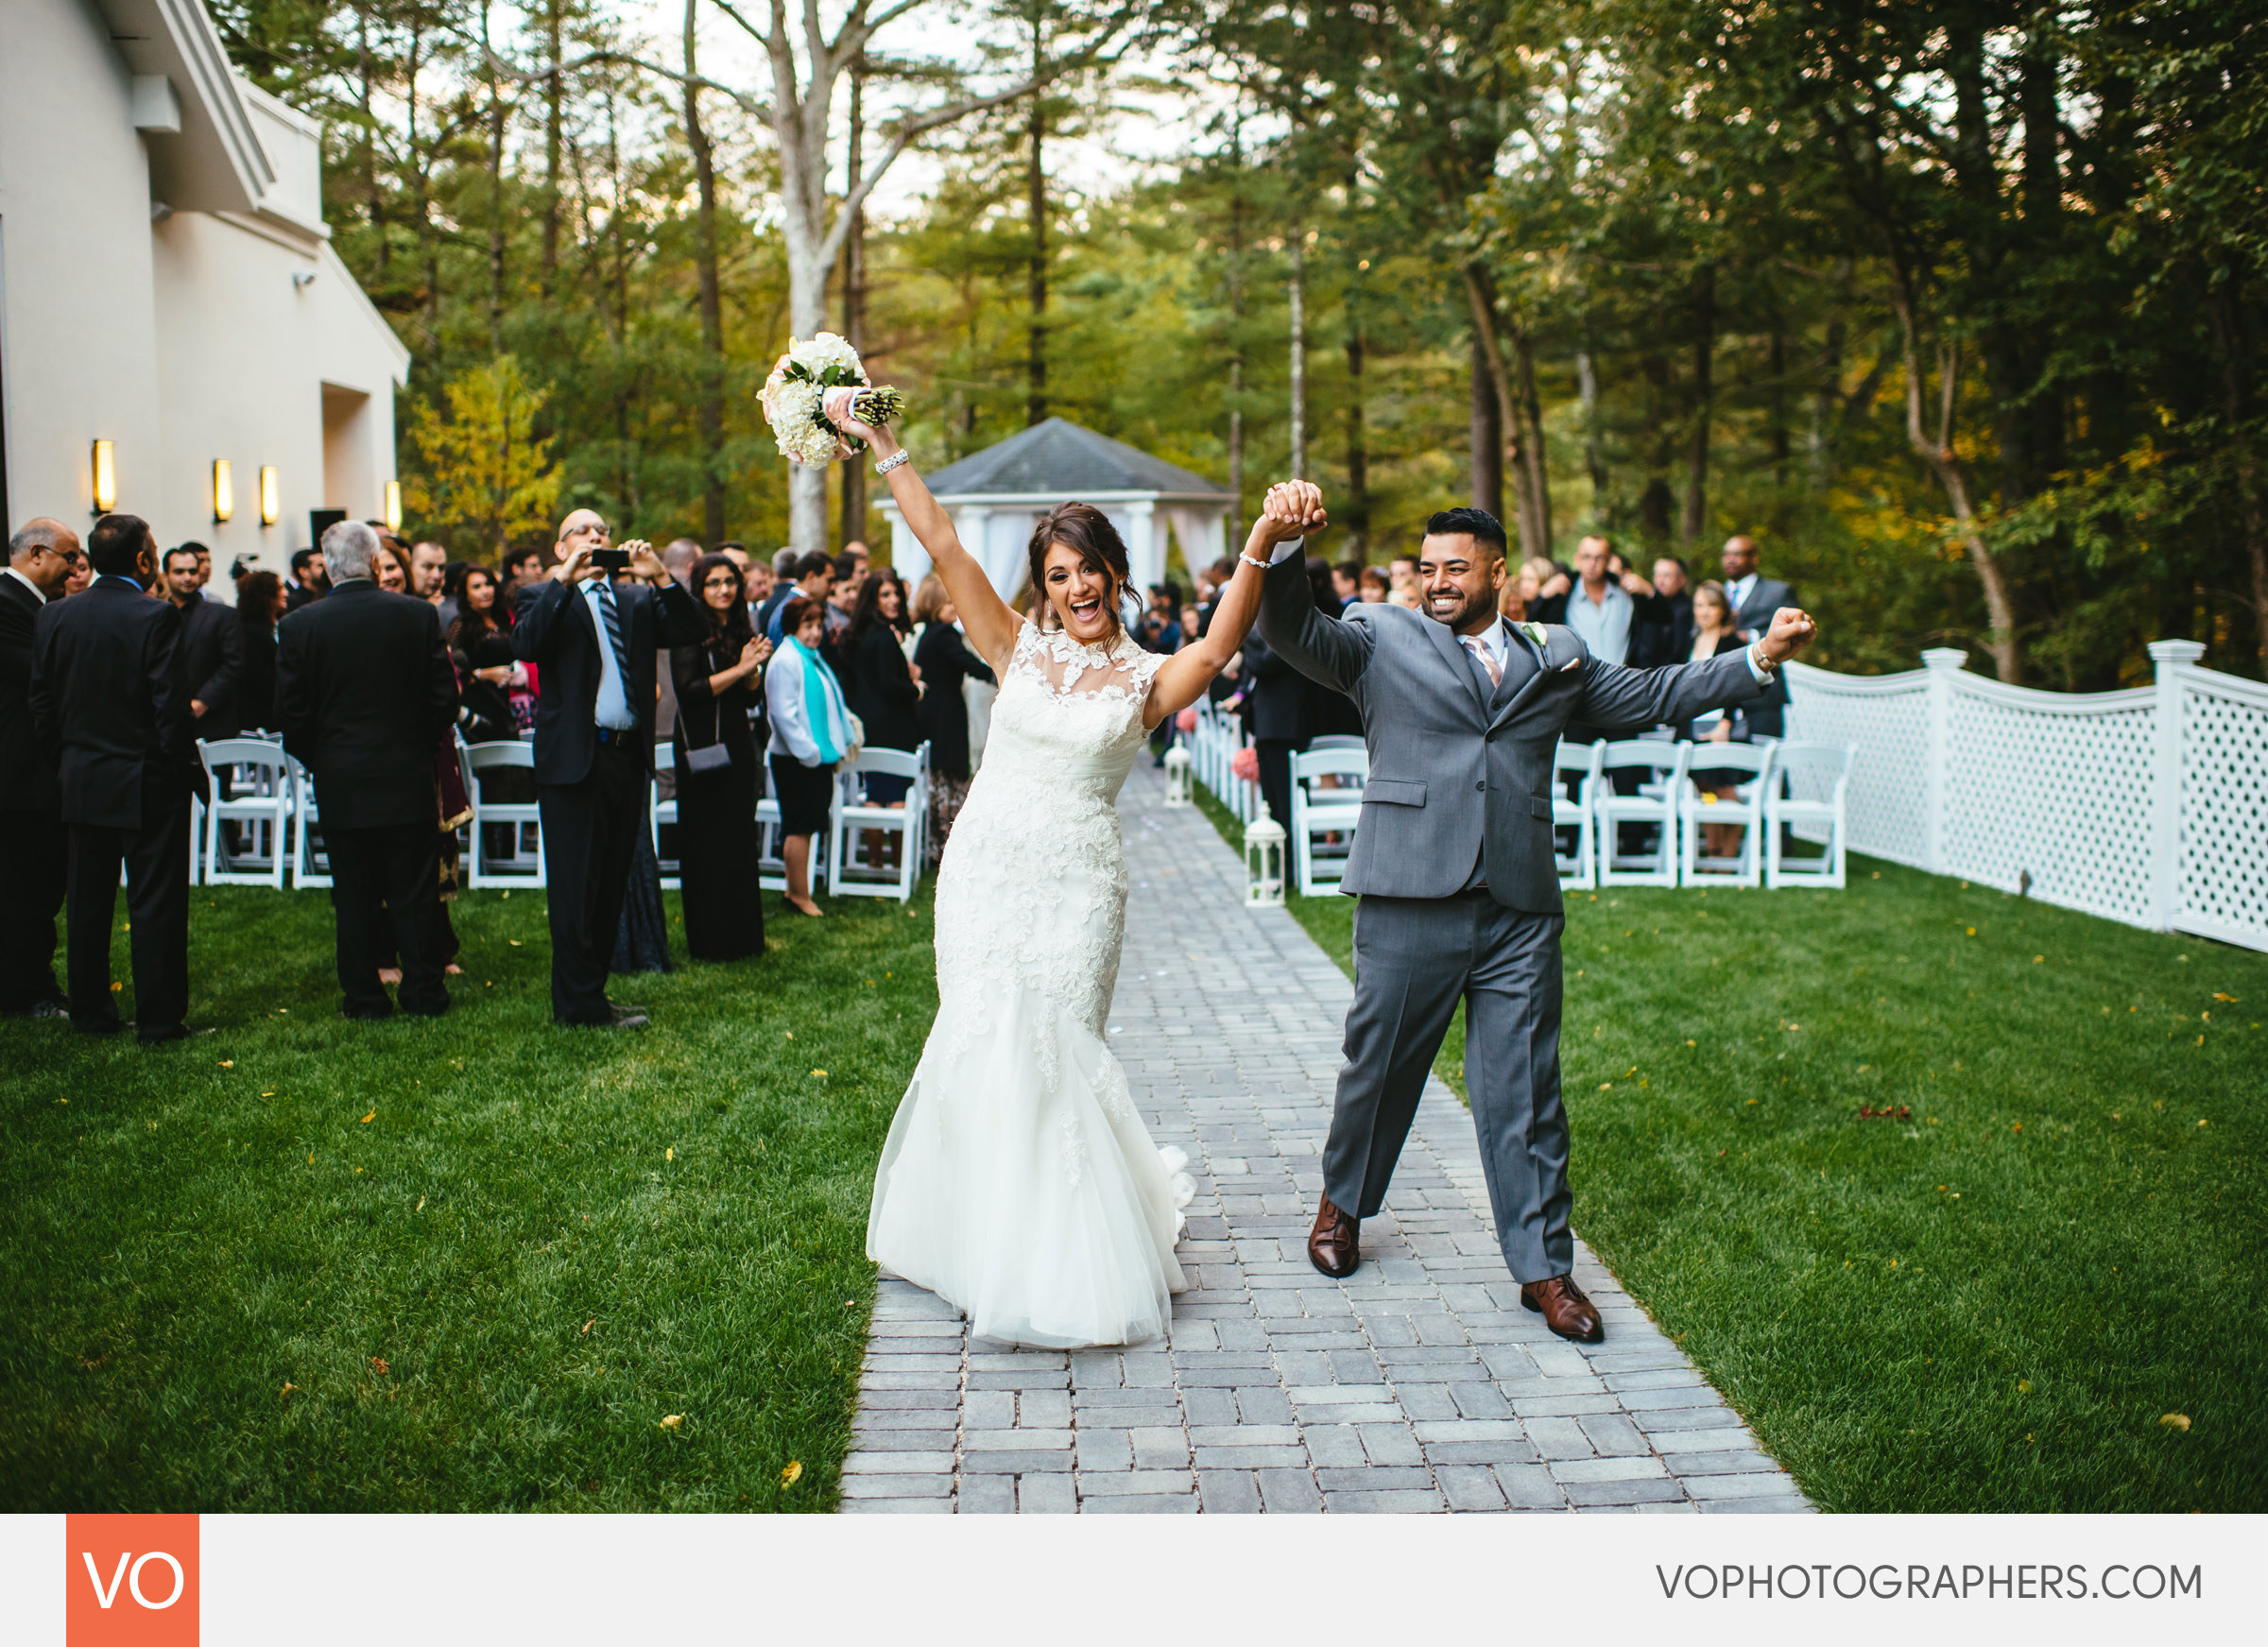 Oriana-Barem-Lakeview-Pavilion-Wedding-0031